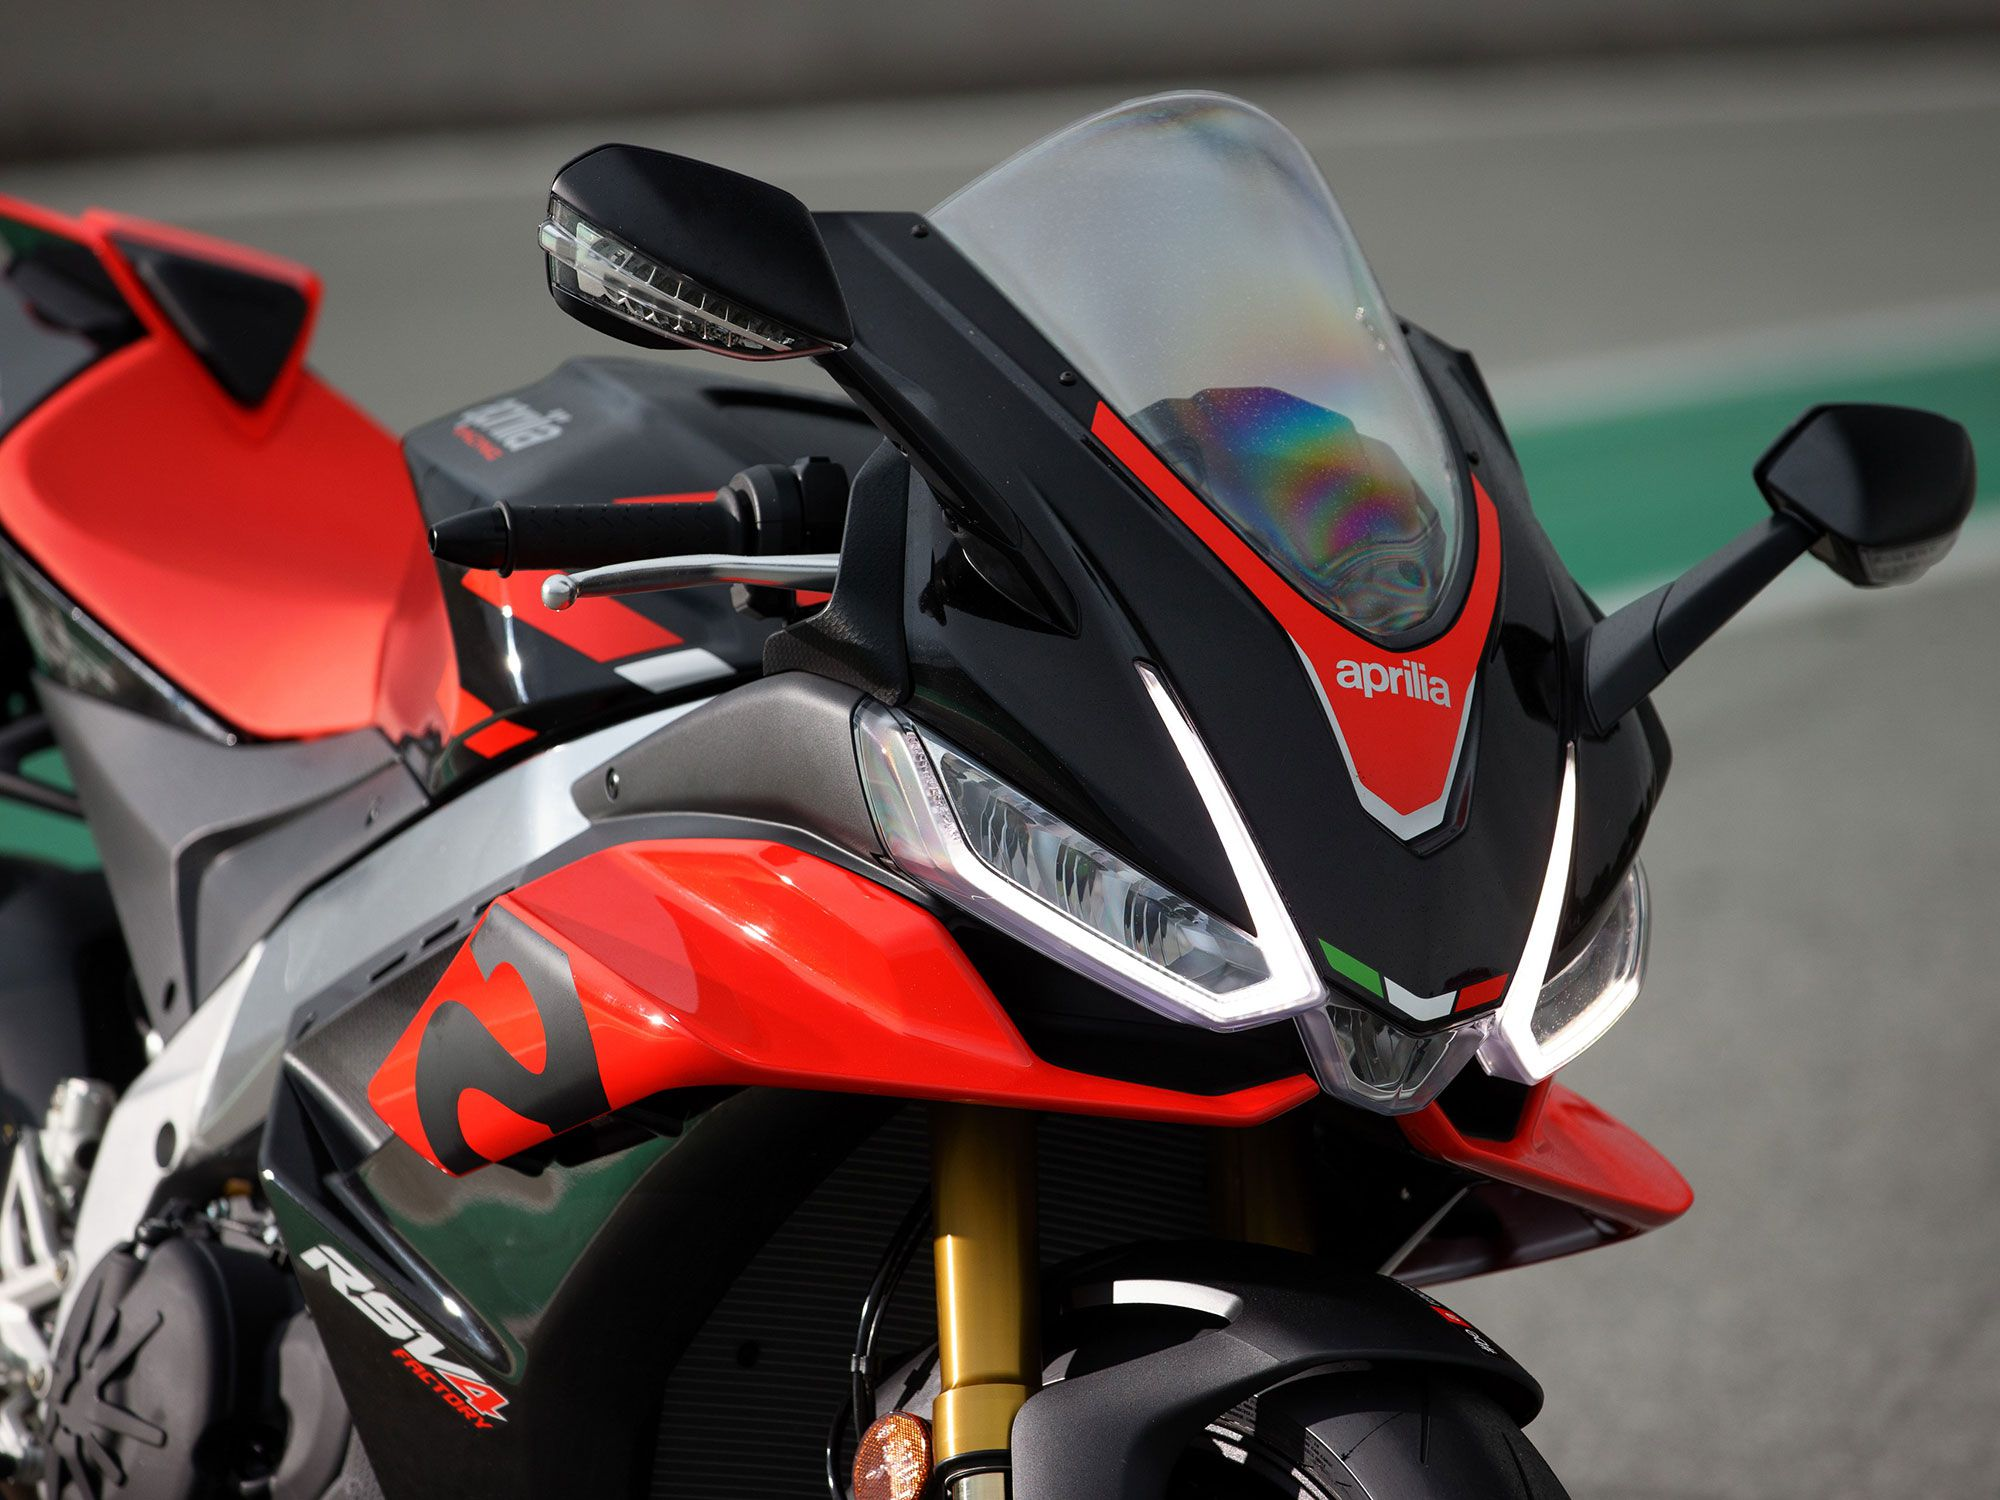 The RSV4's front fairing is broader, which better shields the rider in the tucked position.